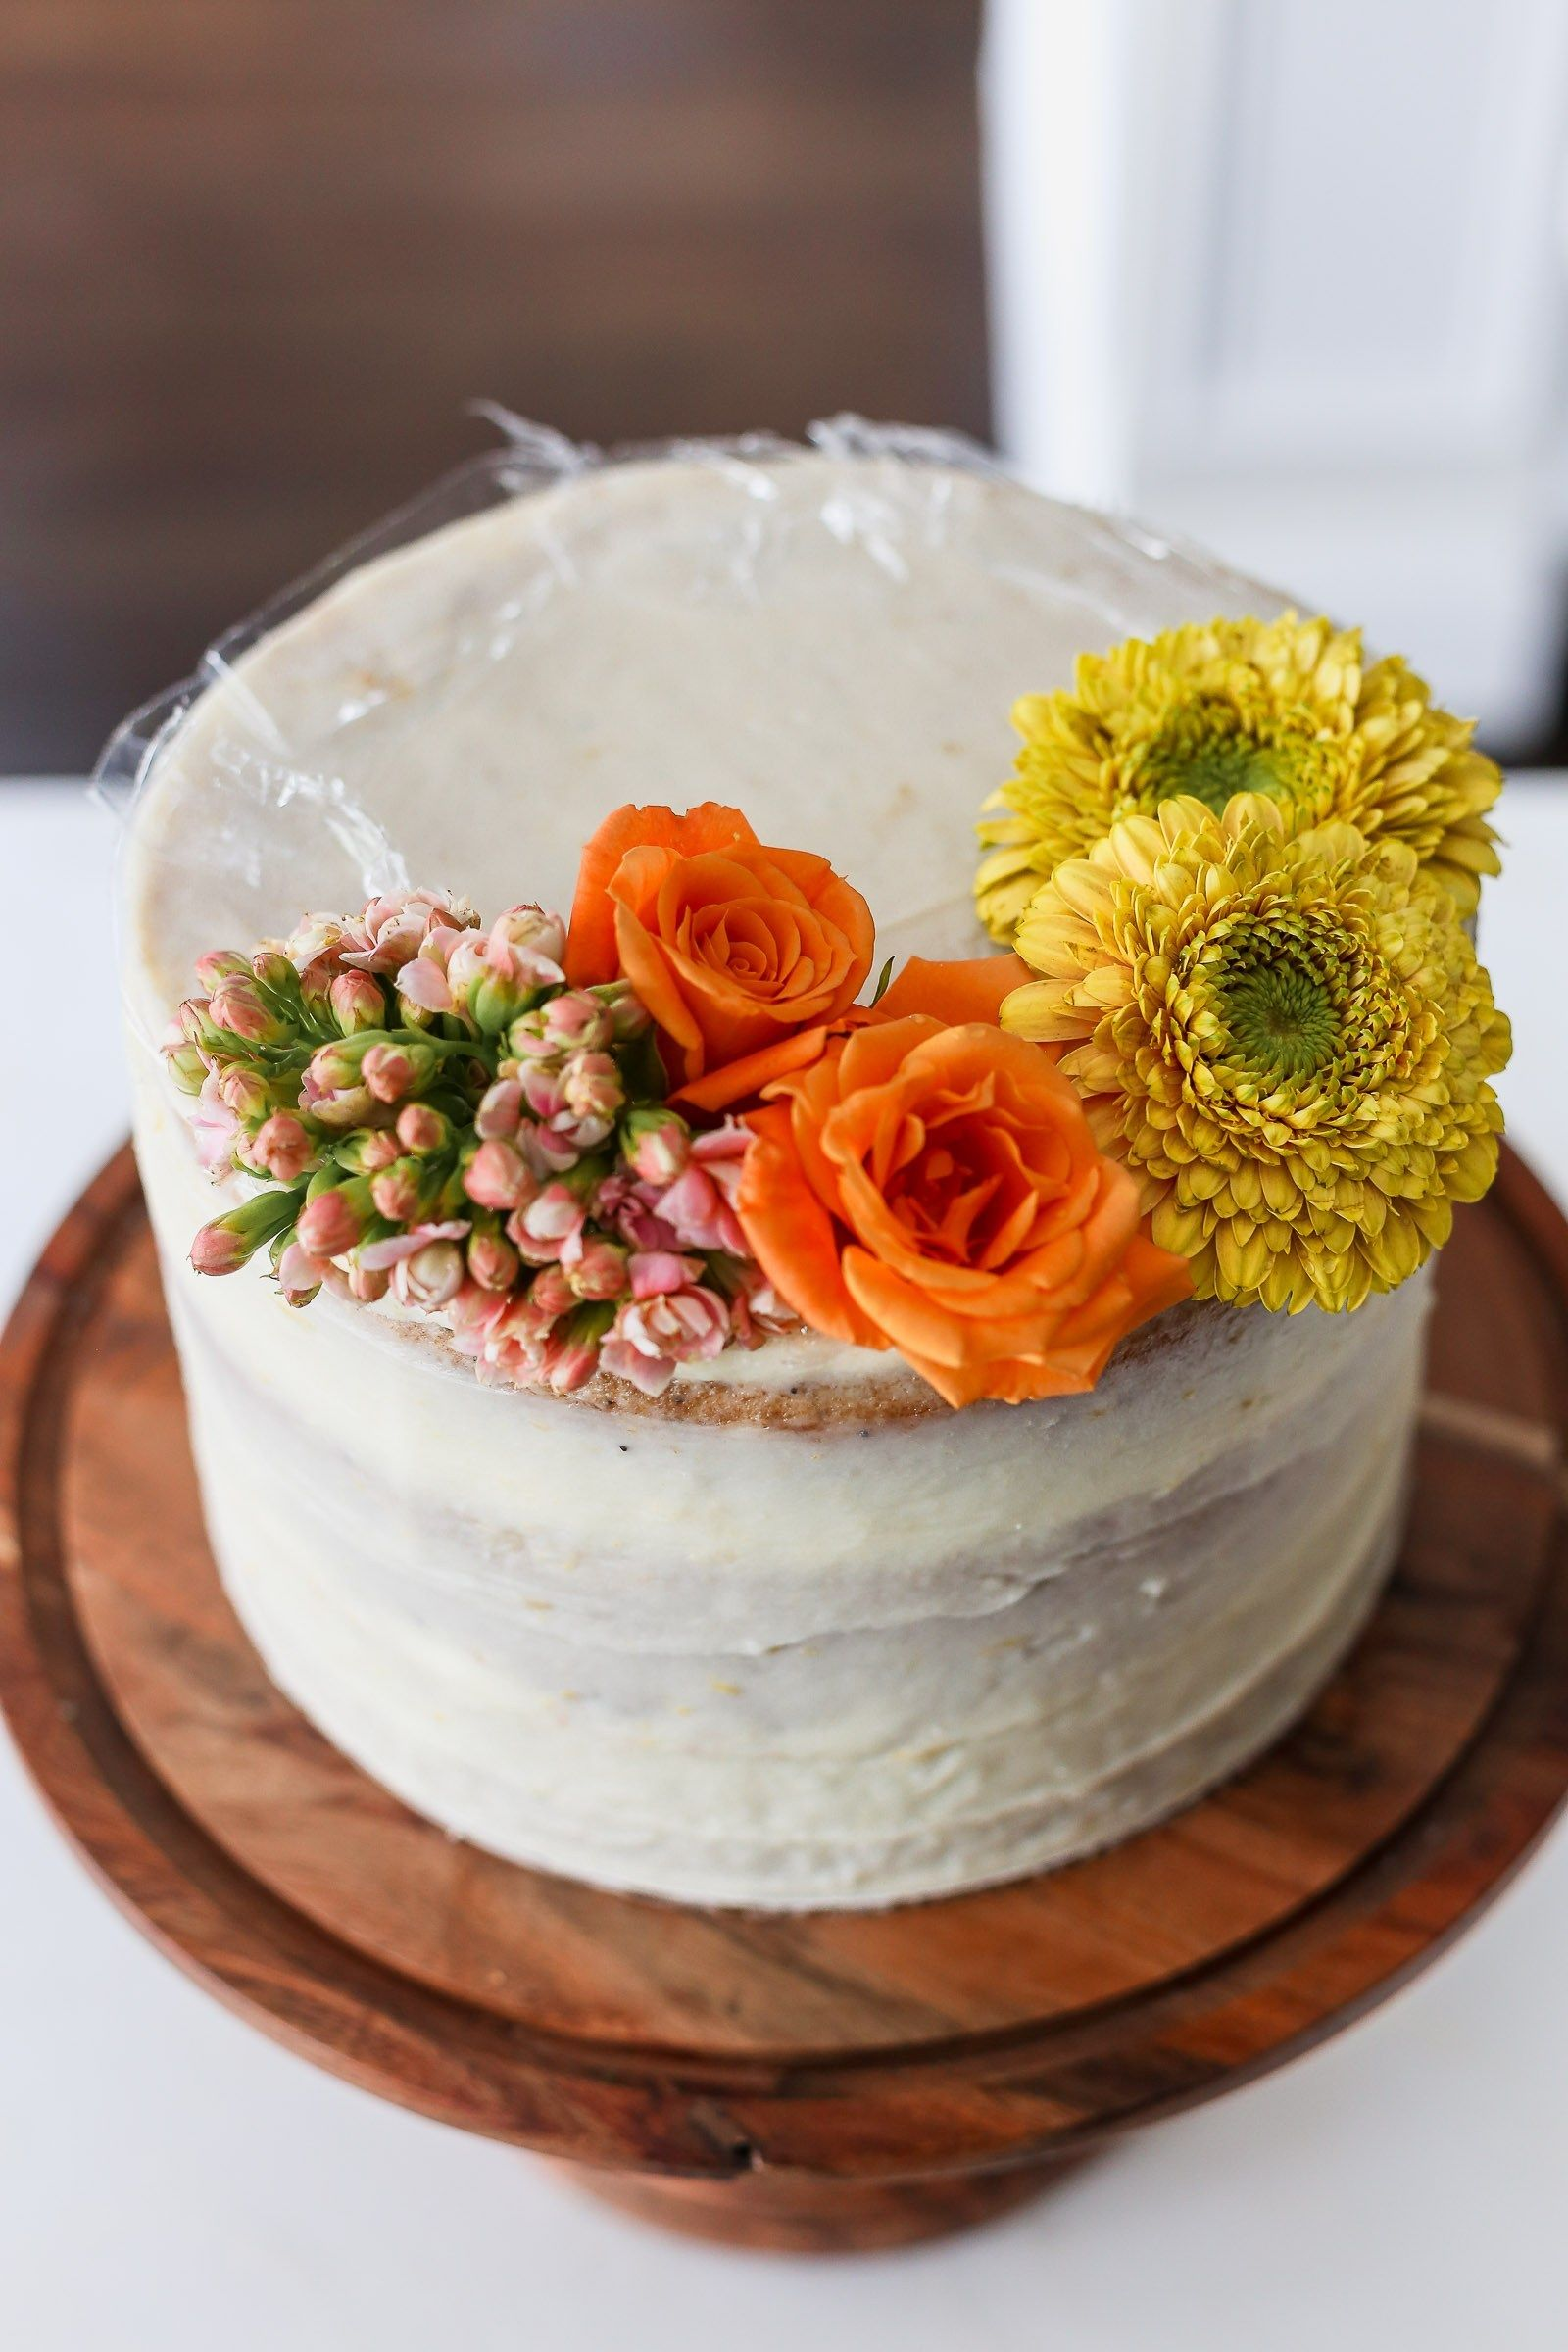 How To Decorate A Cake With Non Edible Flowers Frosting Fettuccine Flower Cake Fresh Flower Cake Cake Decorating Flowers